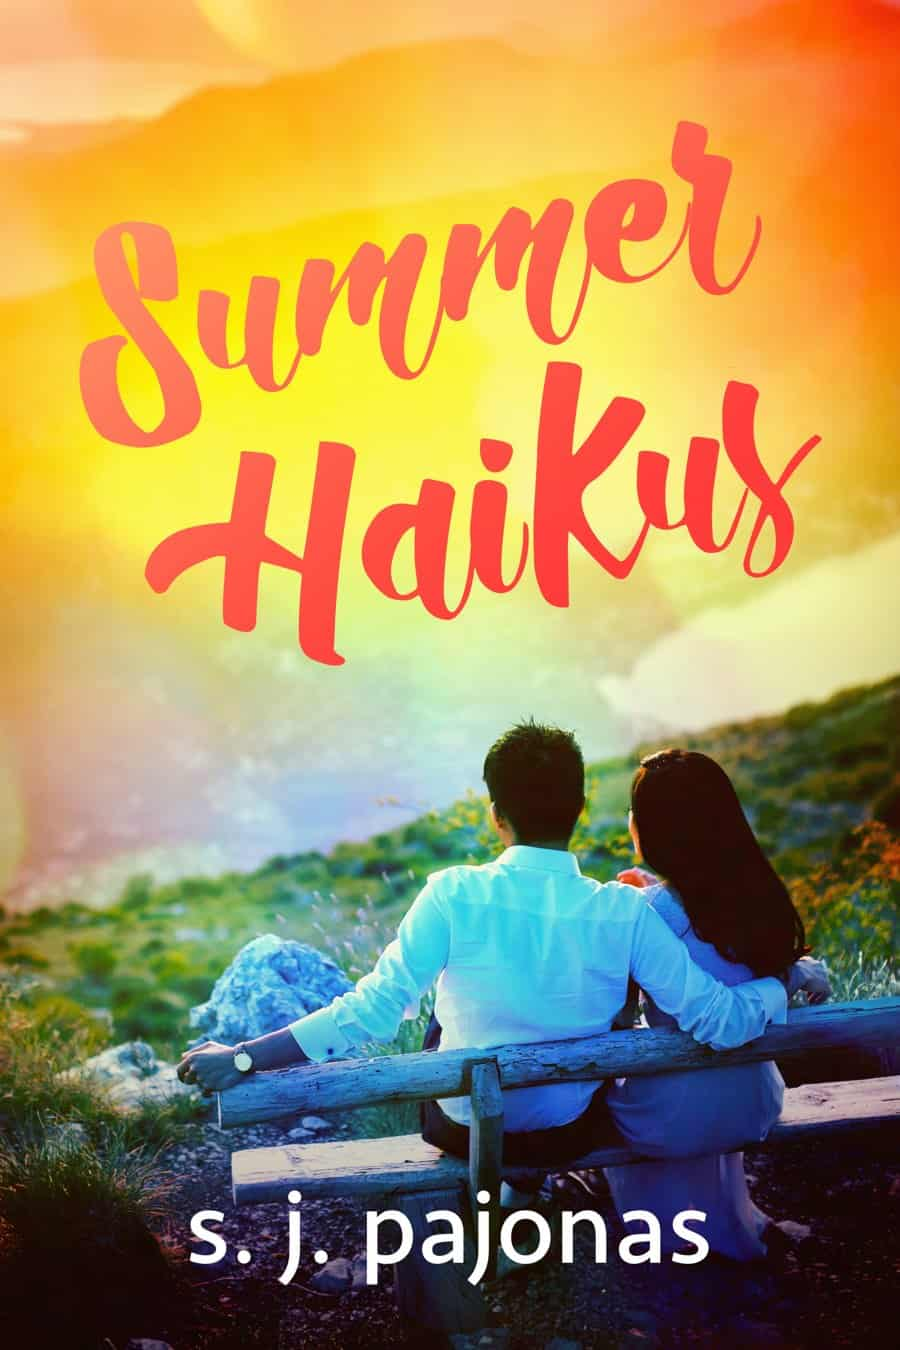 SUMMER HAIKUS is discounted for the next few days. Get it while it's on sale!